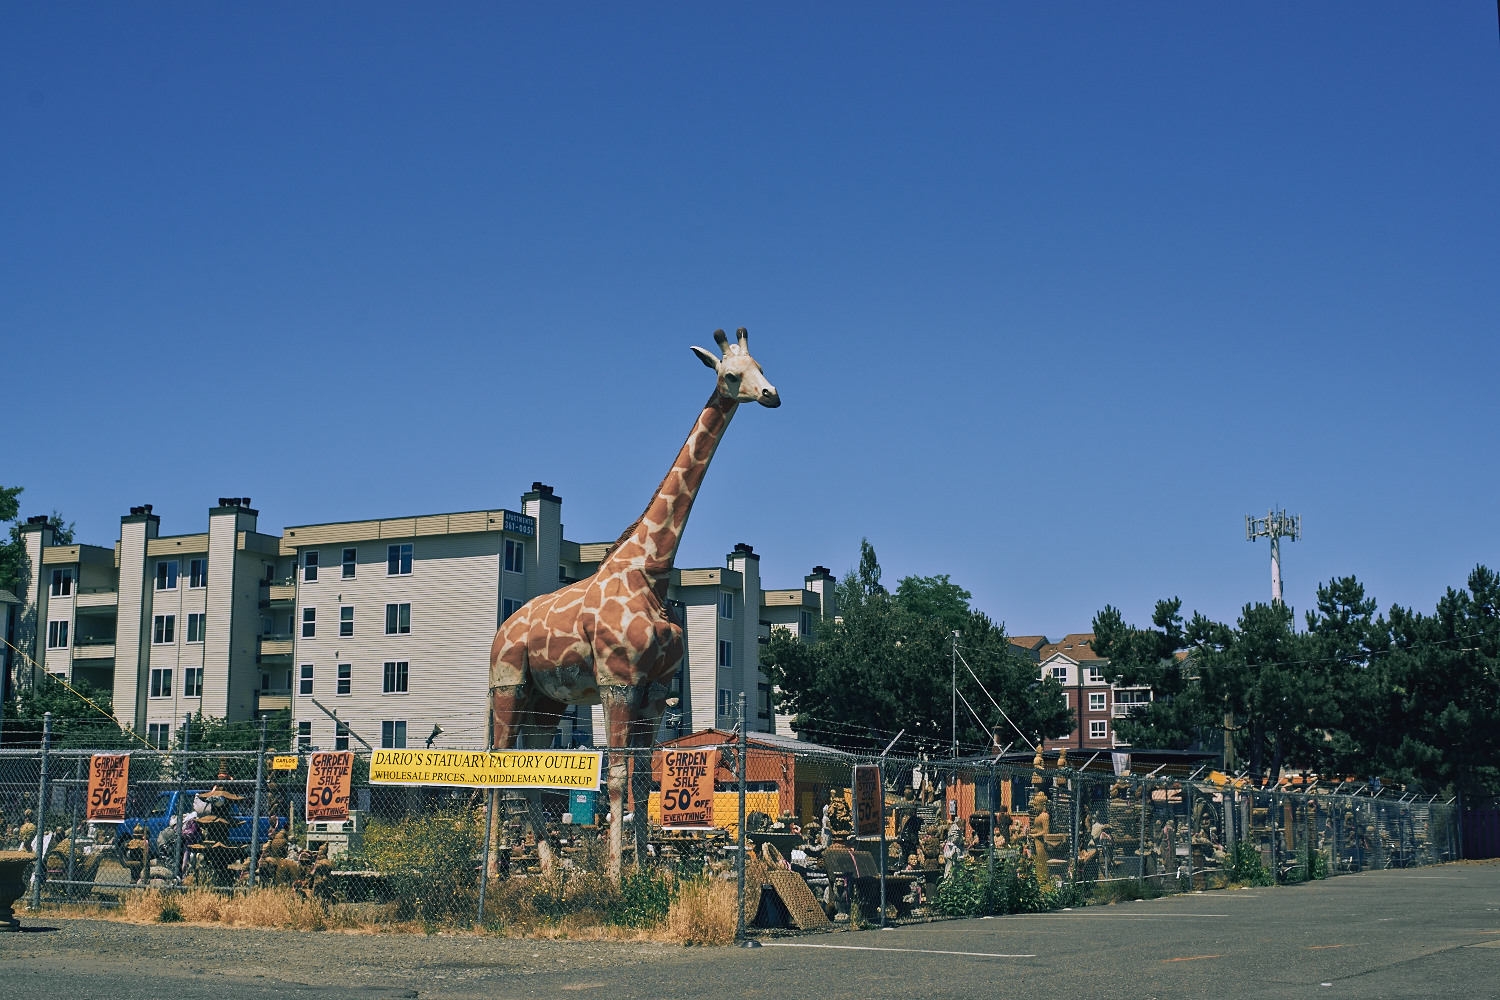 Honey! guess what I got for our backyard?... A Giraffes!!!!! WHY? because it's 50% off!!